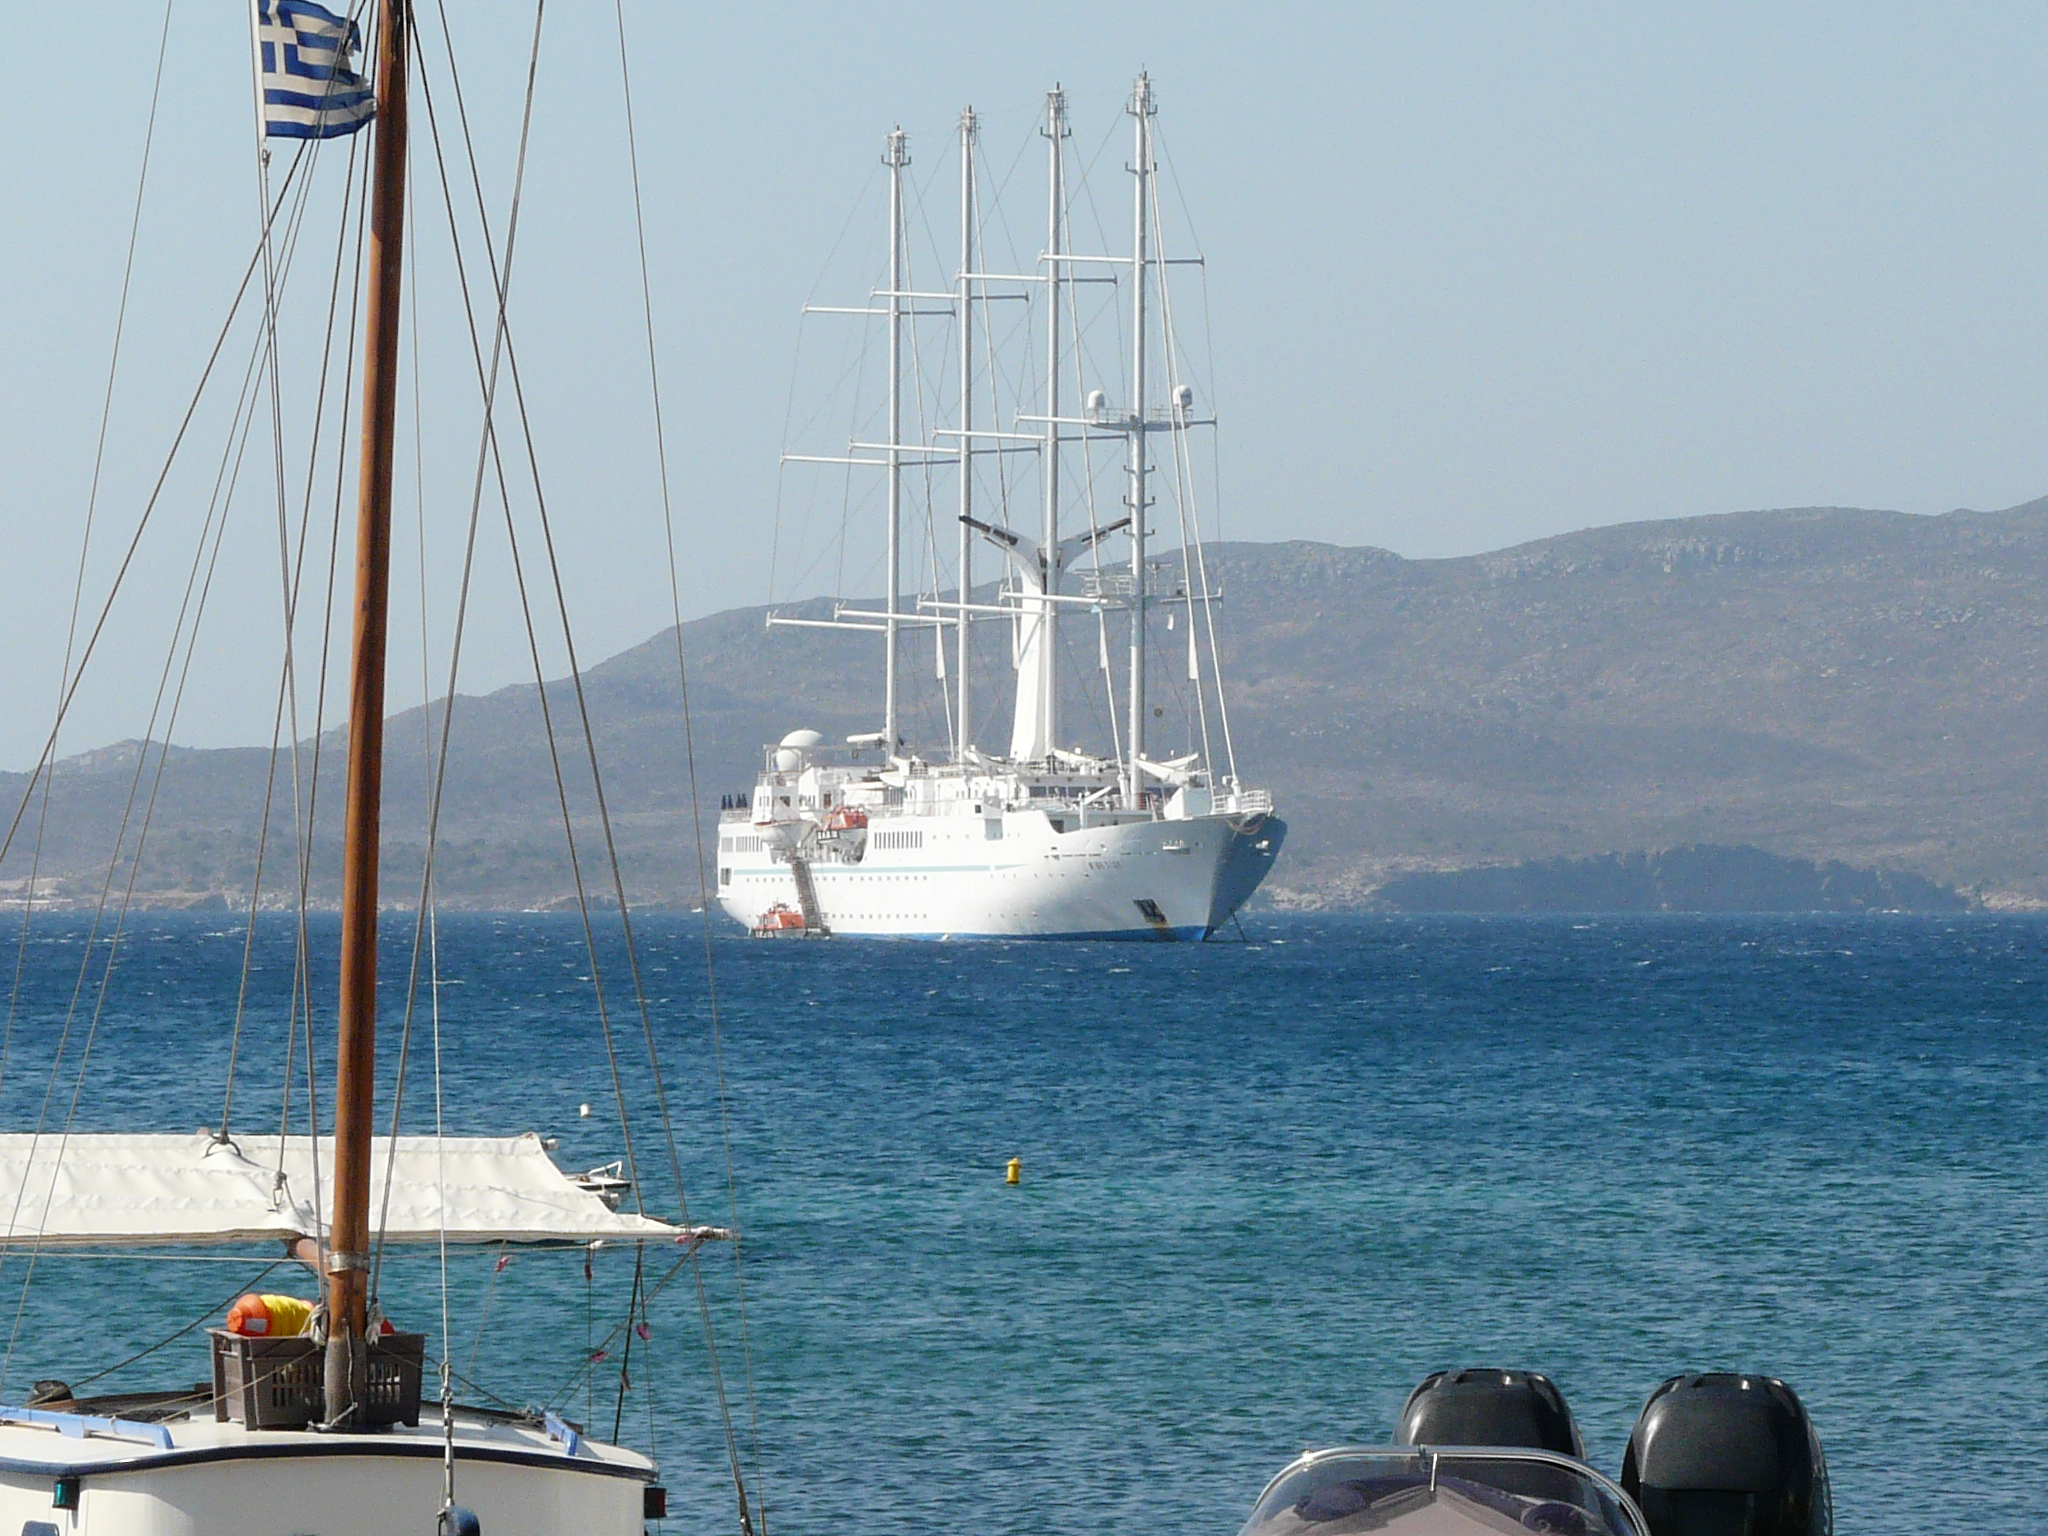 09Aug21 Milos 02 view of our ship only one in harbor.JPG